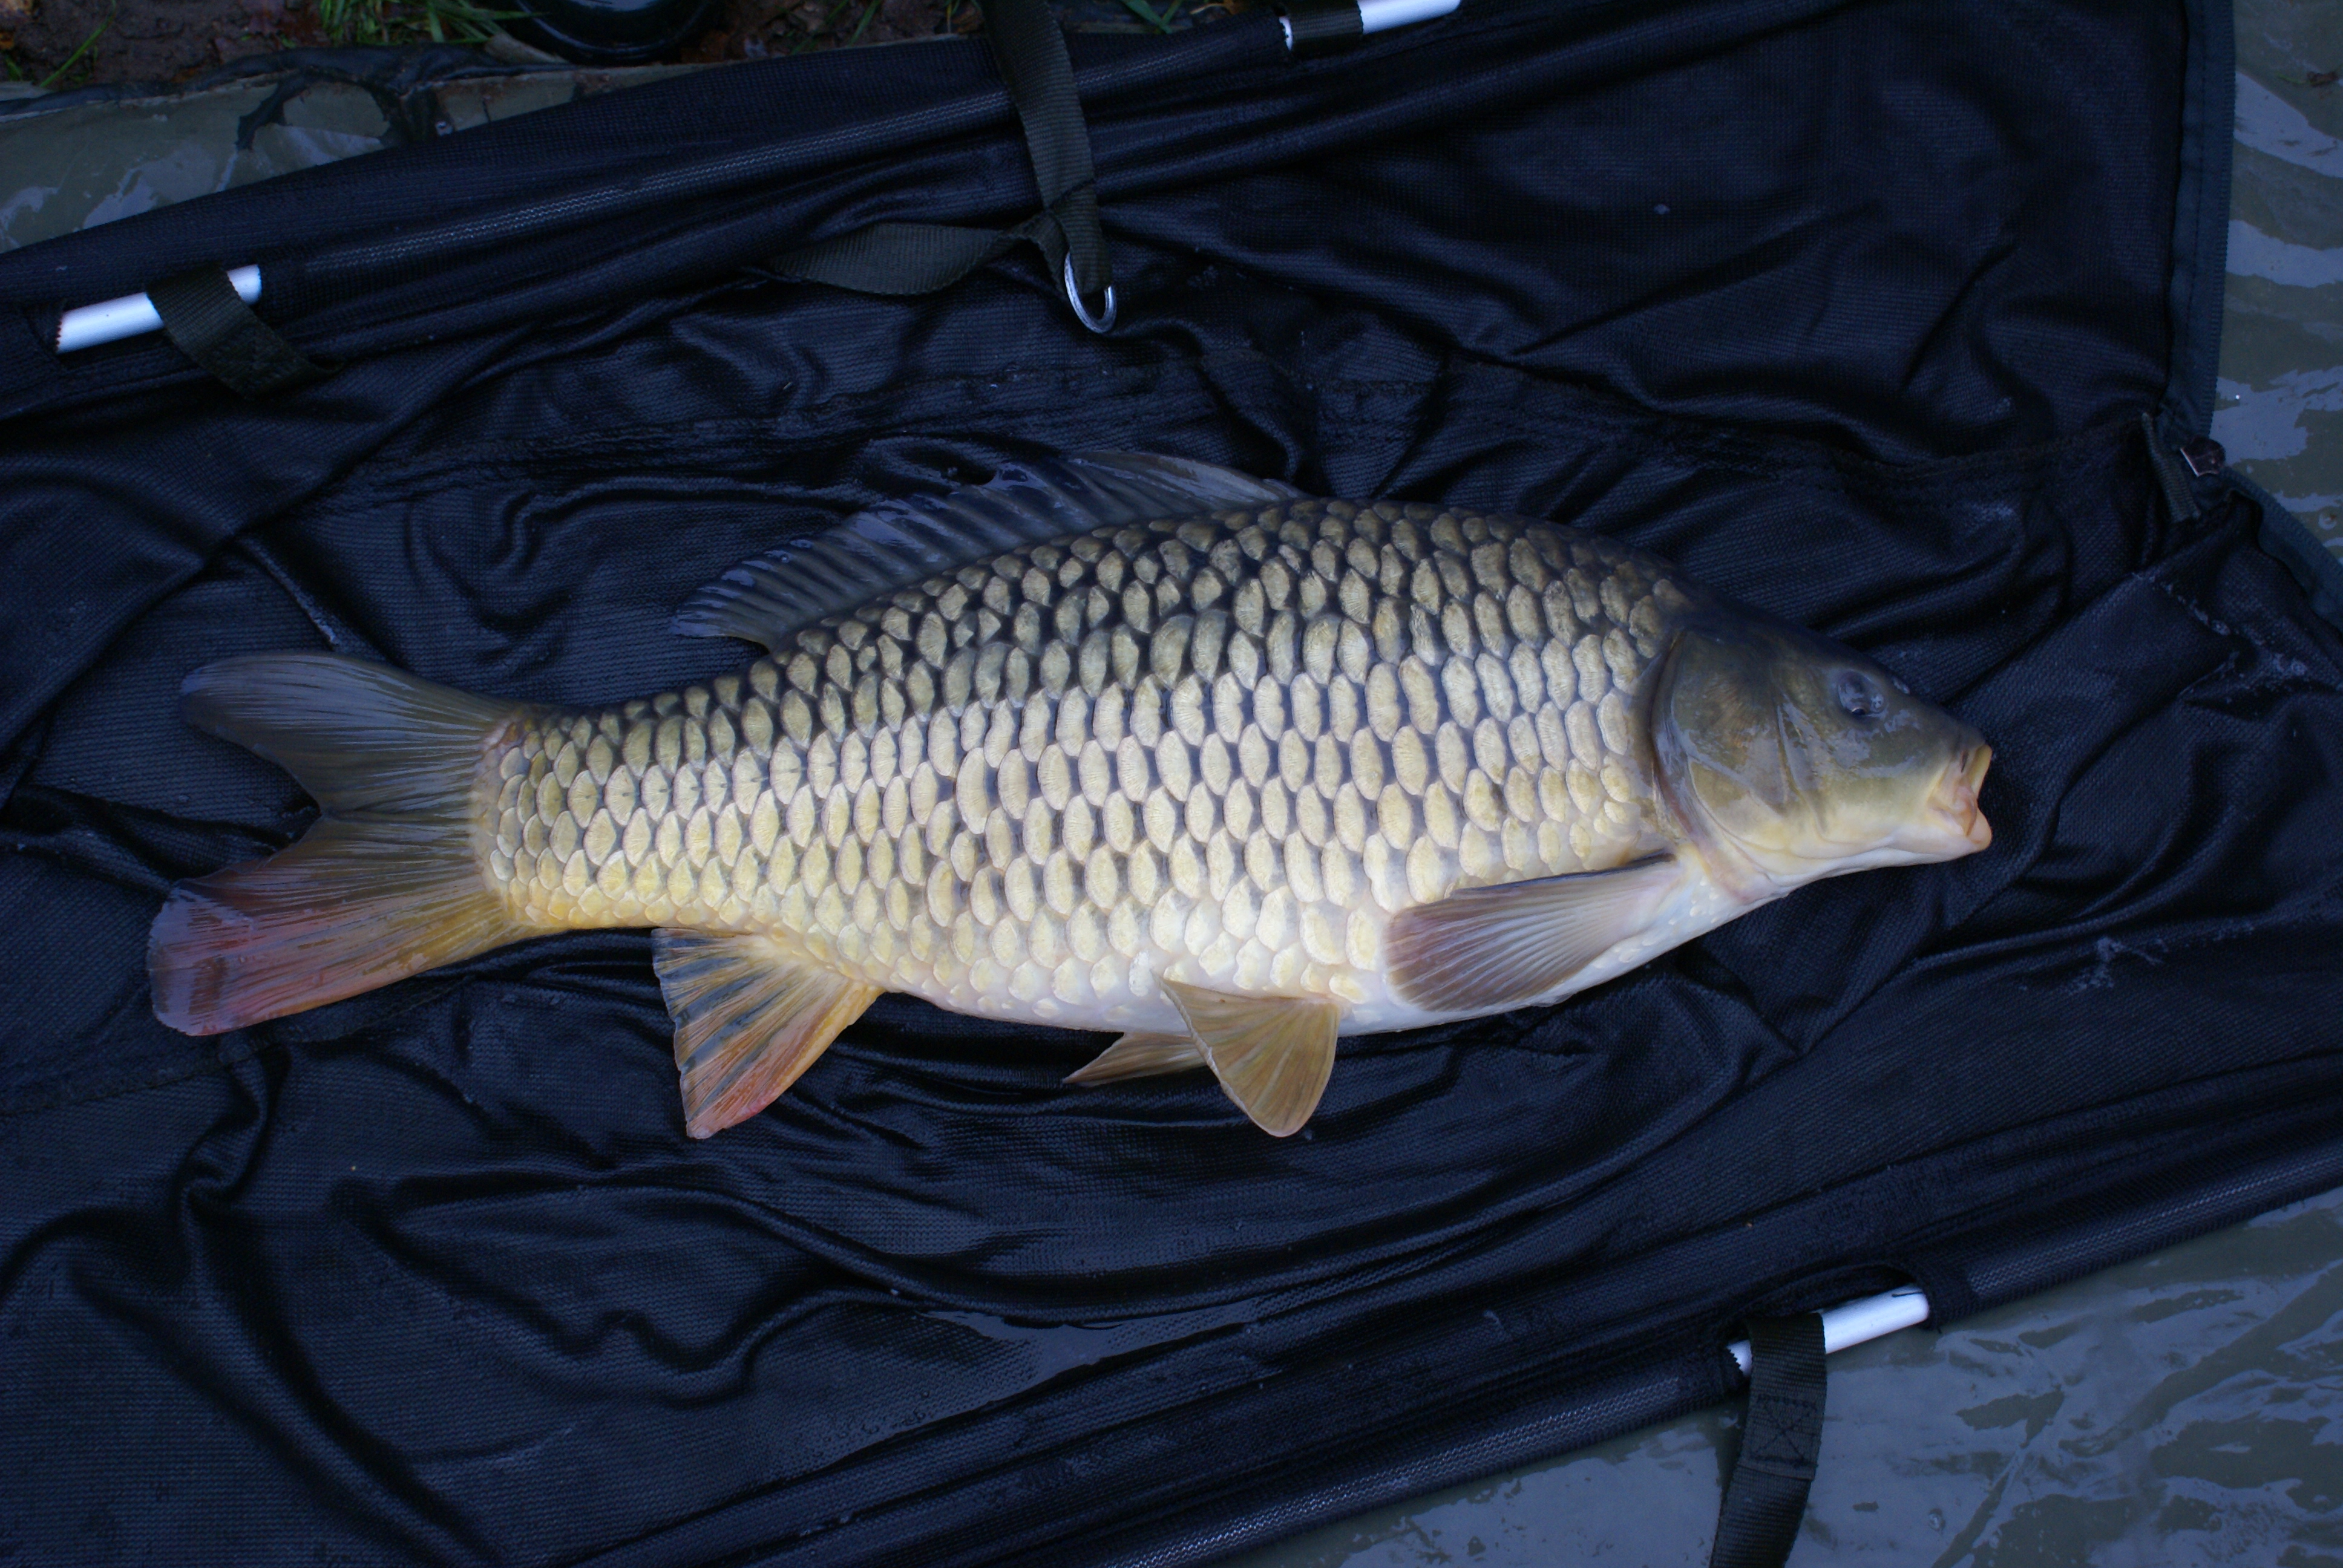 New carp introduced to the carp pond ravenfield ponds for Carp pond design